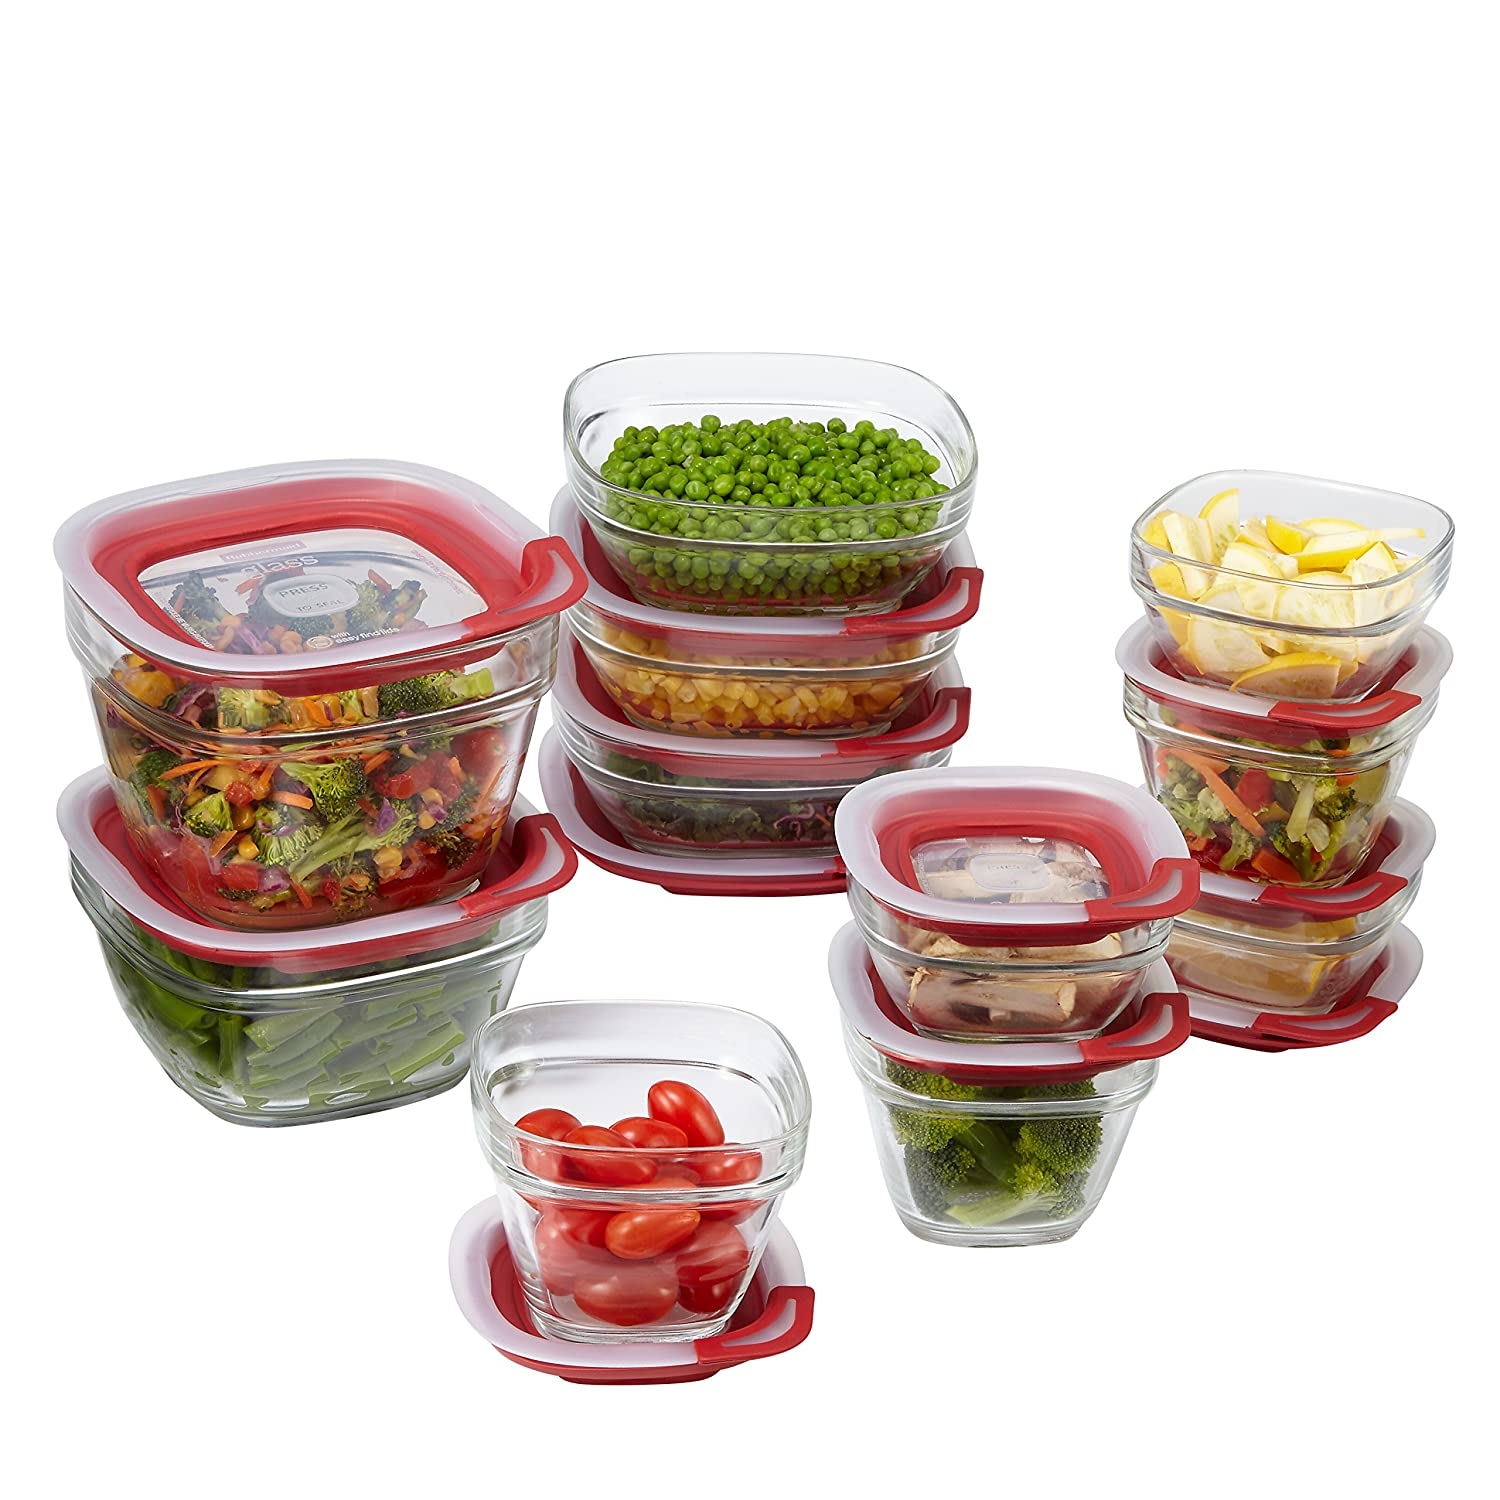 Rubbermaid Easy Find Lids Glass Food Storage Container, 22-piece Set, Red